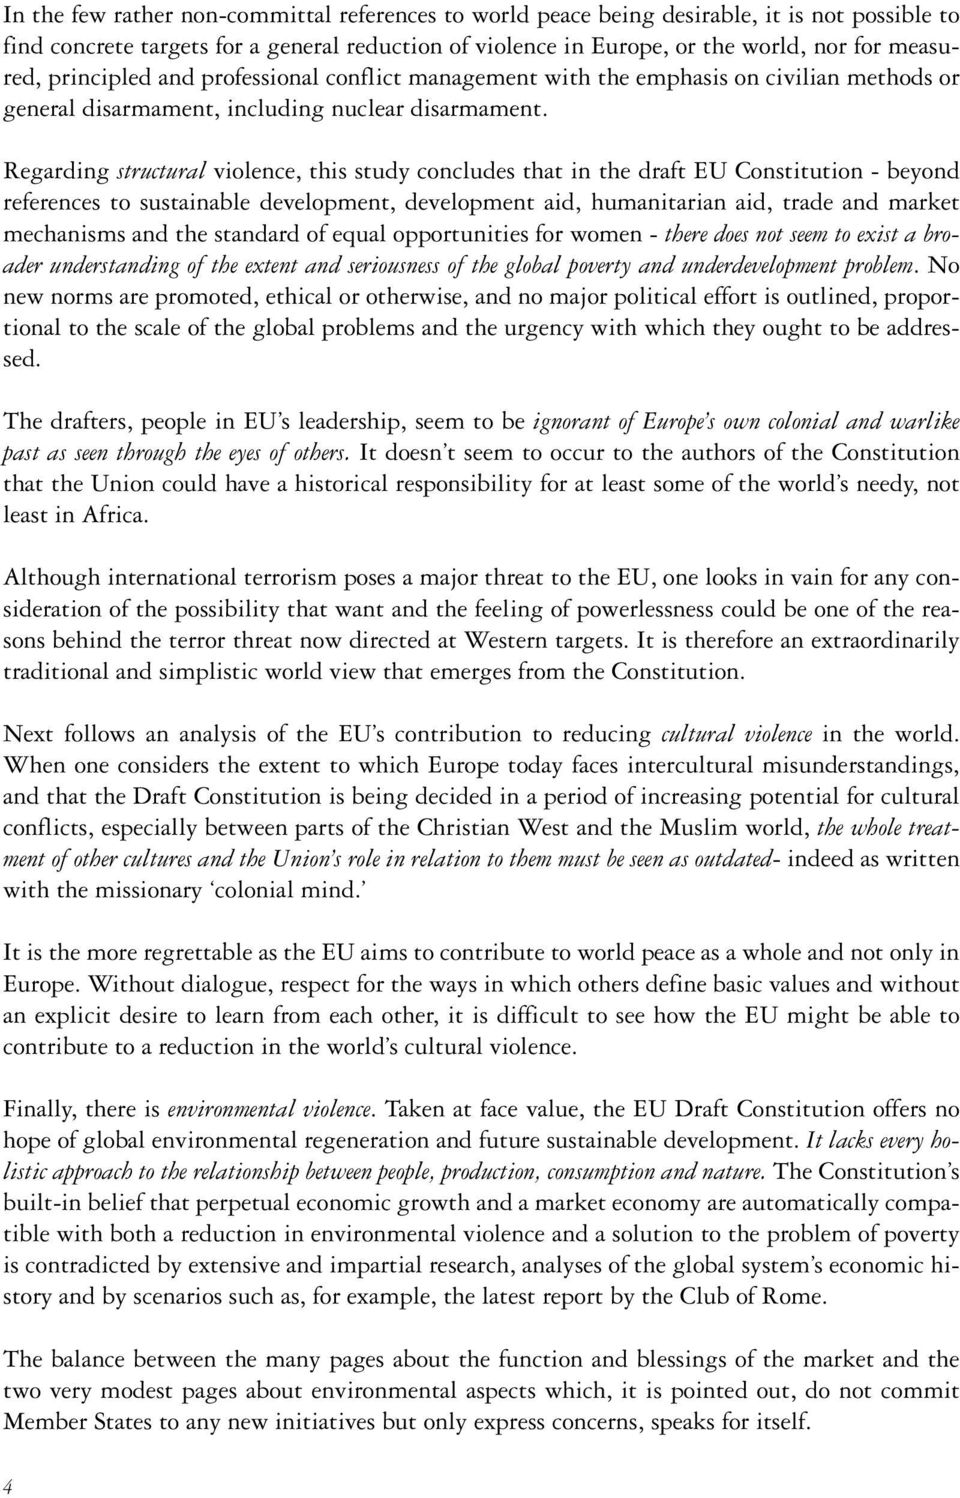 Regarding structural violence, this study concludes that in the draft EU Constitution - beyond references to sustainable development, development aid, humanitarian aid, trade and market mechanisms